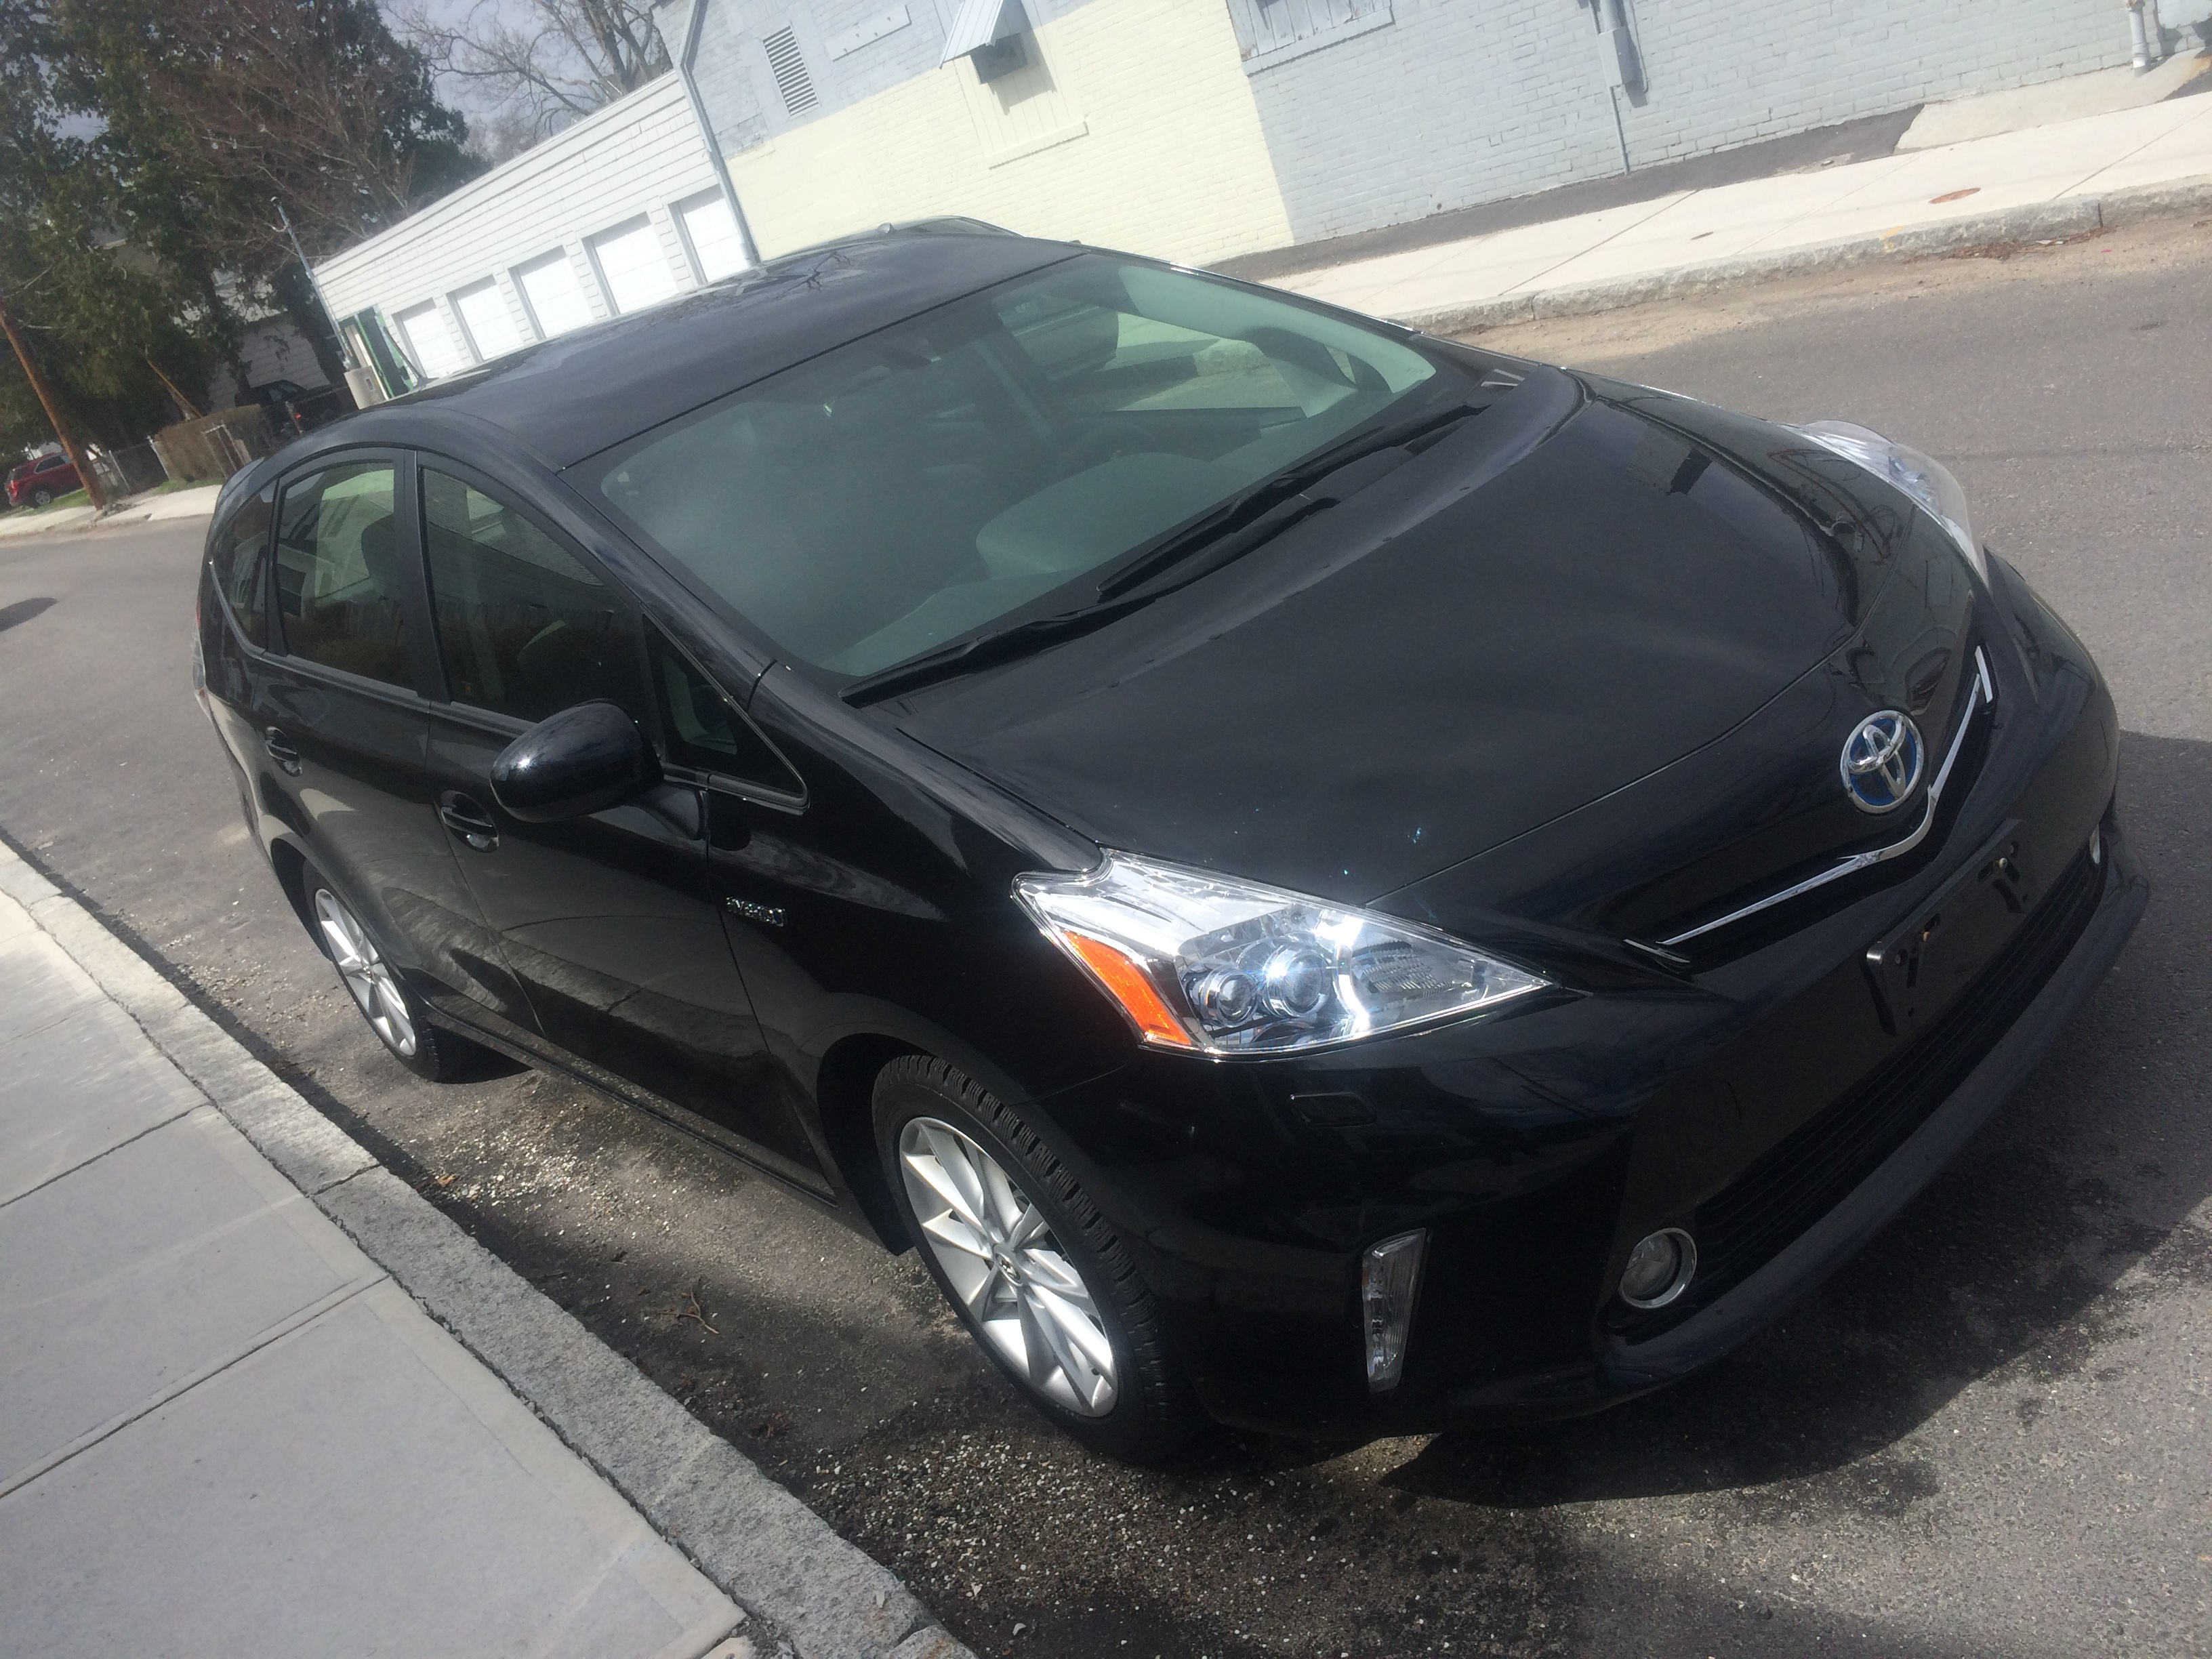 How I Paid $1,000 Under Kelley Blue Book For My New-to-Me Prius V